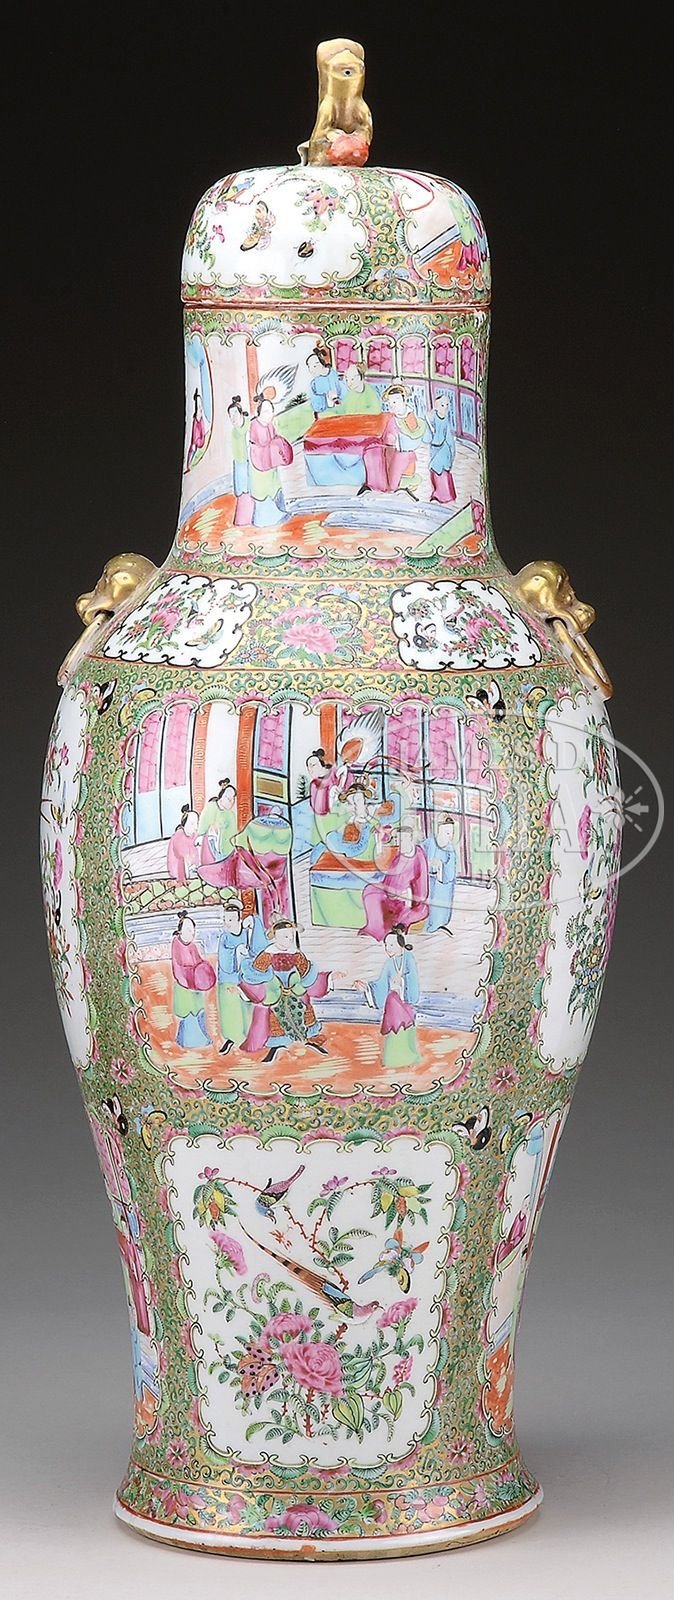 chinese rose medallion vase of large rose medallion covered vase china 19th century the vase with large rose medallion covered vase china 19th century the vase hand painted in